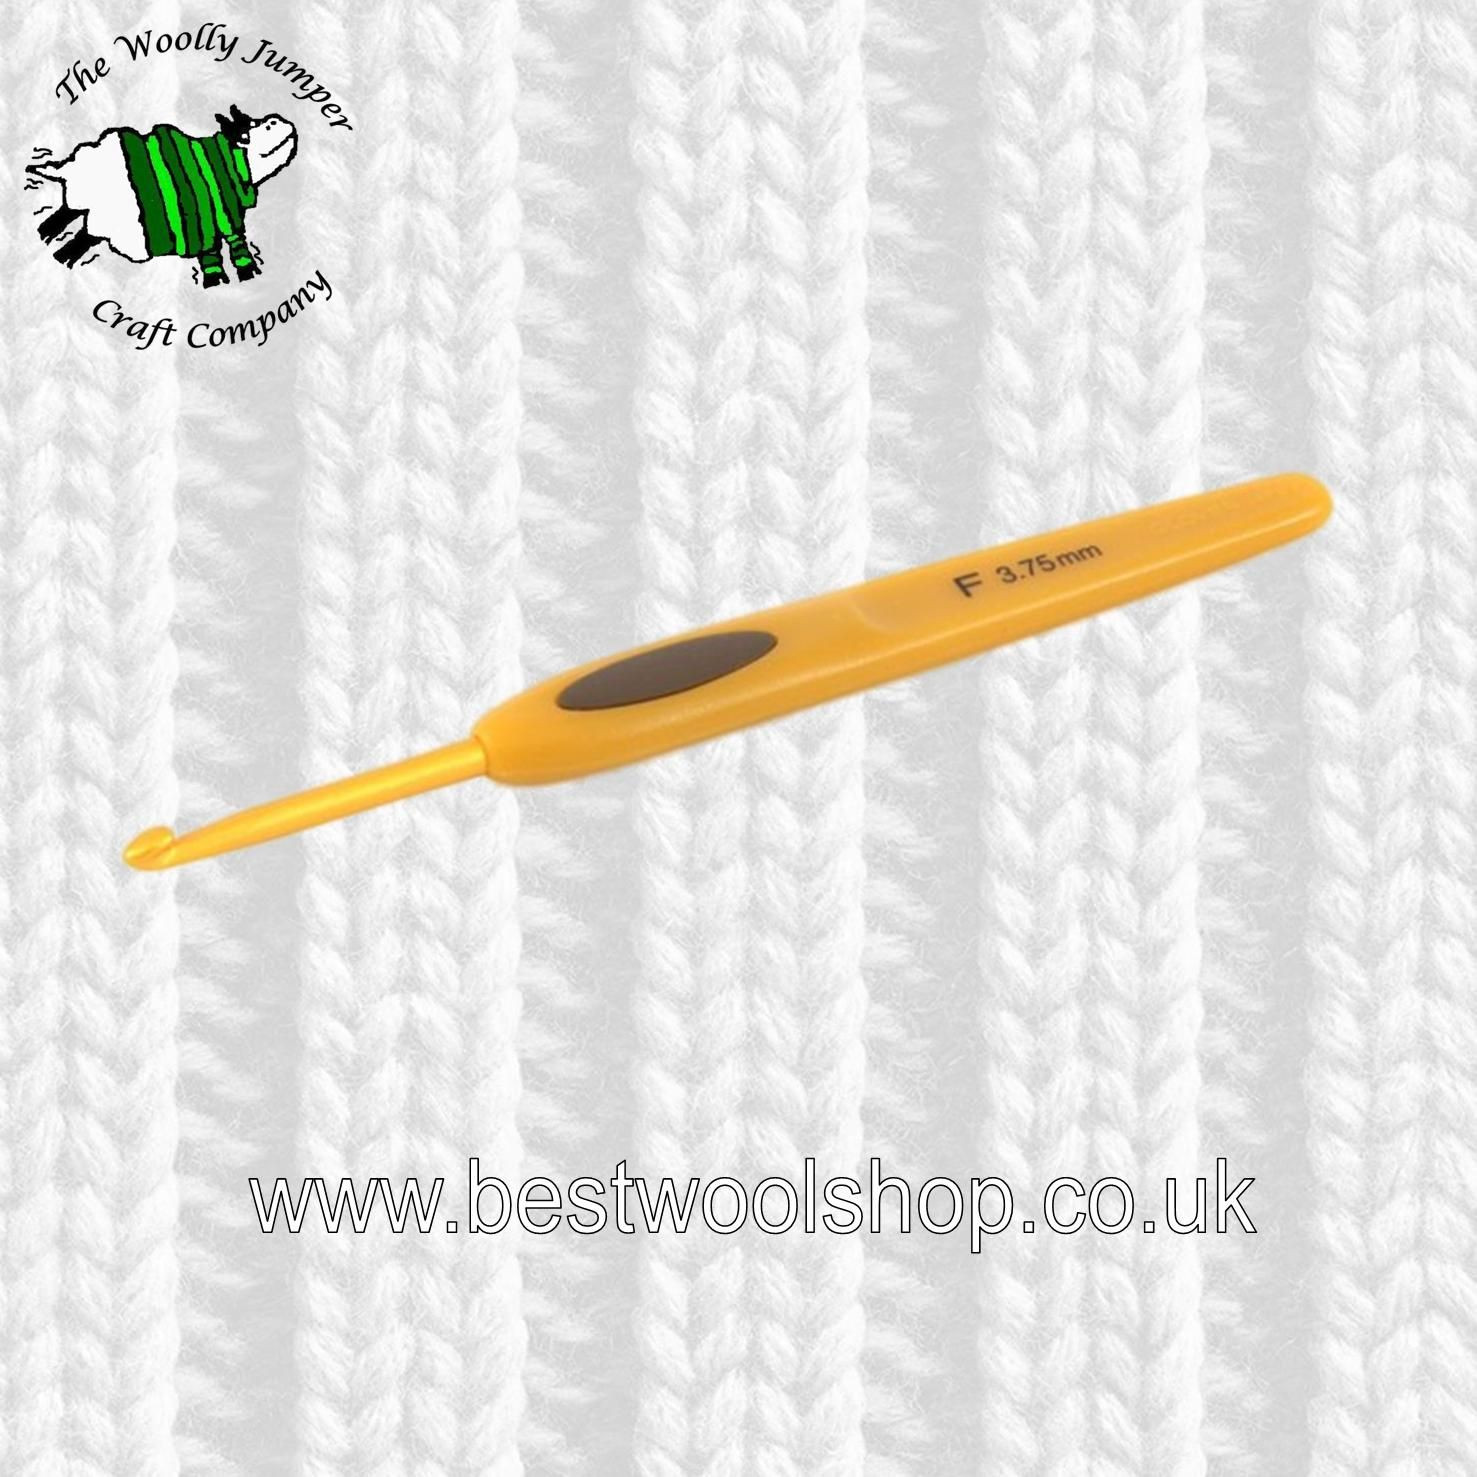 Elegant 3 75 Mm Clover soft touch Crochet Hook F Clover soft touch Crochet Hooks Of Awesome Hooked – Clover soft touch Clover soft touch Crochet Hooks